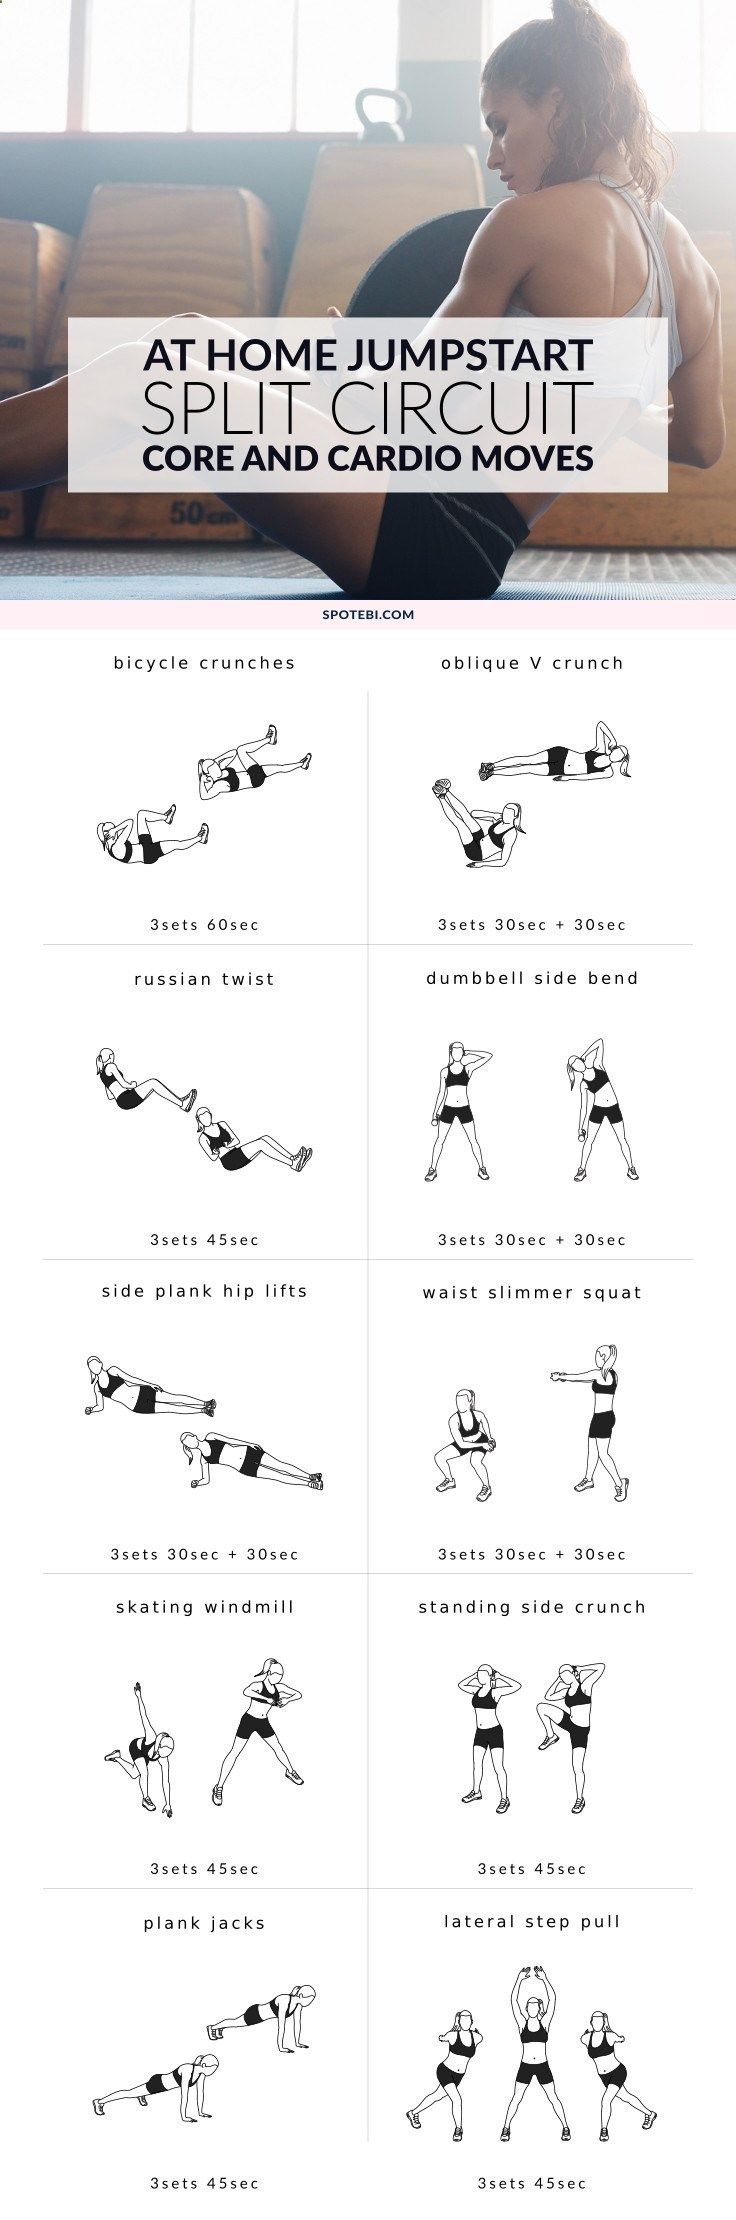 Work your abs, obliques, and the transverse abdominals to slim down your waist and sculpt a tight, toned tummy. This core and cardio split circuit will help burn off your belly fat for up to 48 hours after the workout is over! www.spotebi.com/...